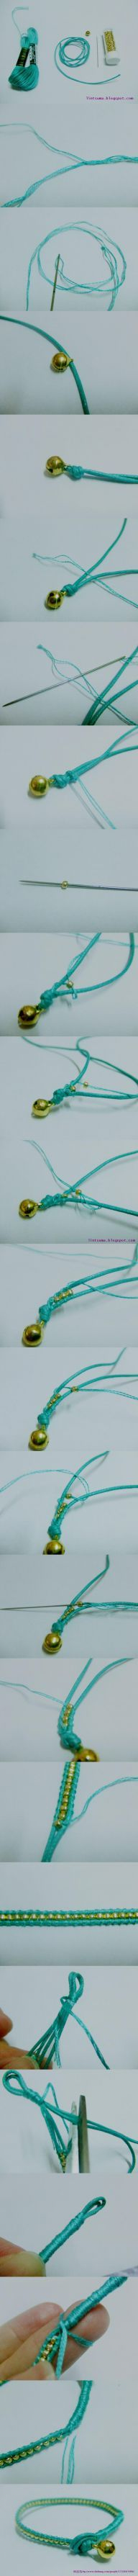 Bracelet tutorial- better pics than other one